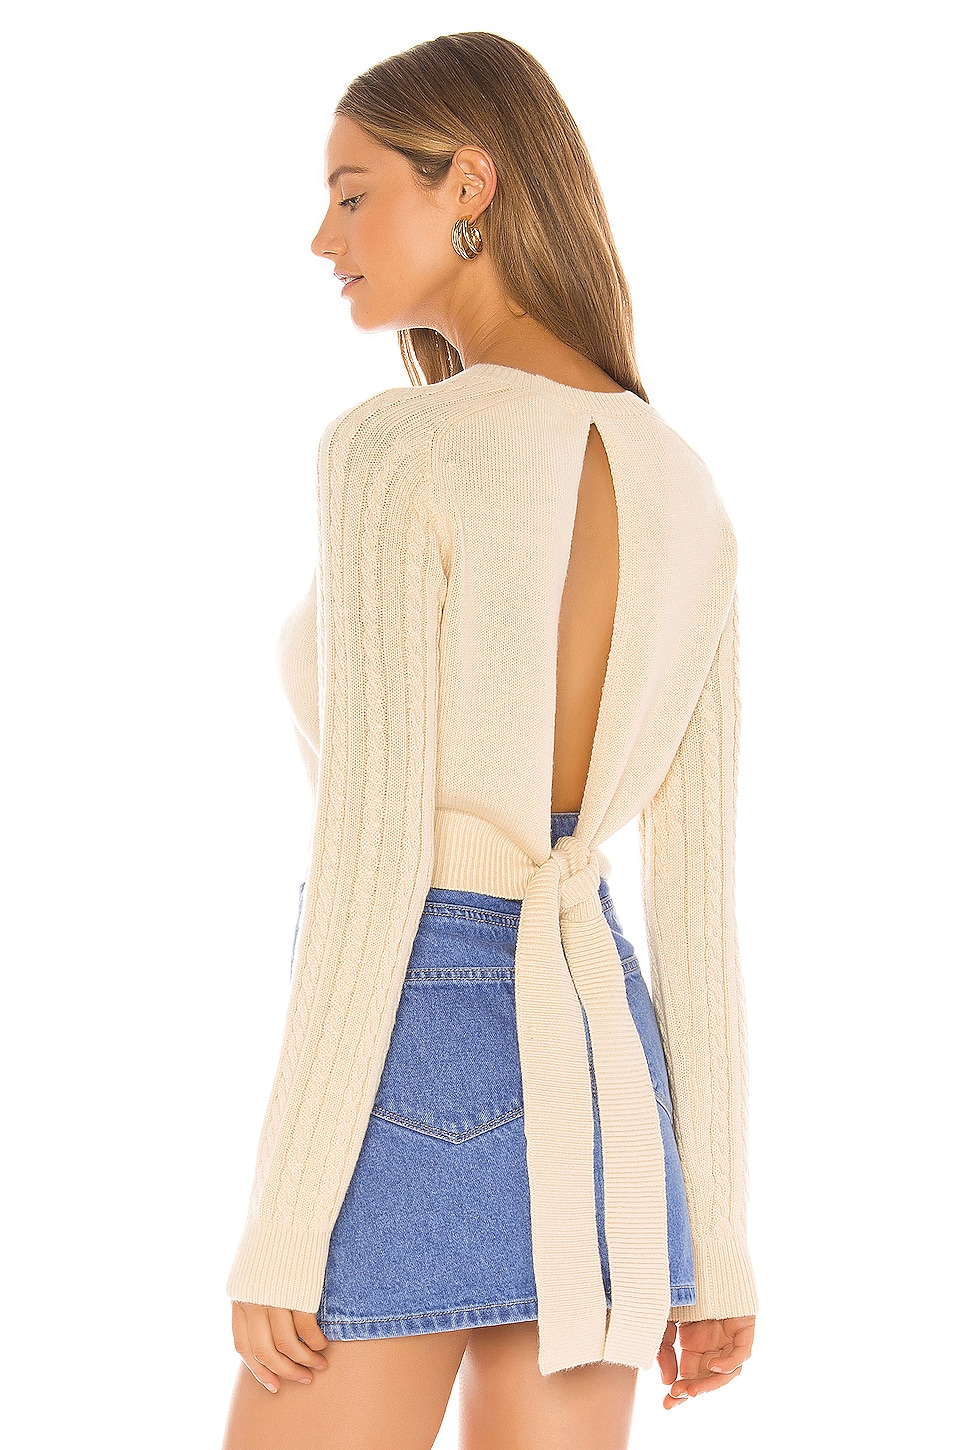 Tularosa Kally Sweater in Cream